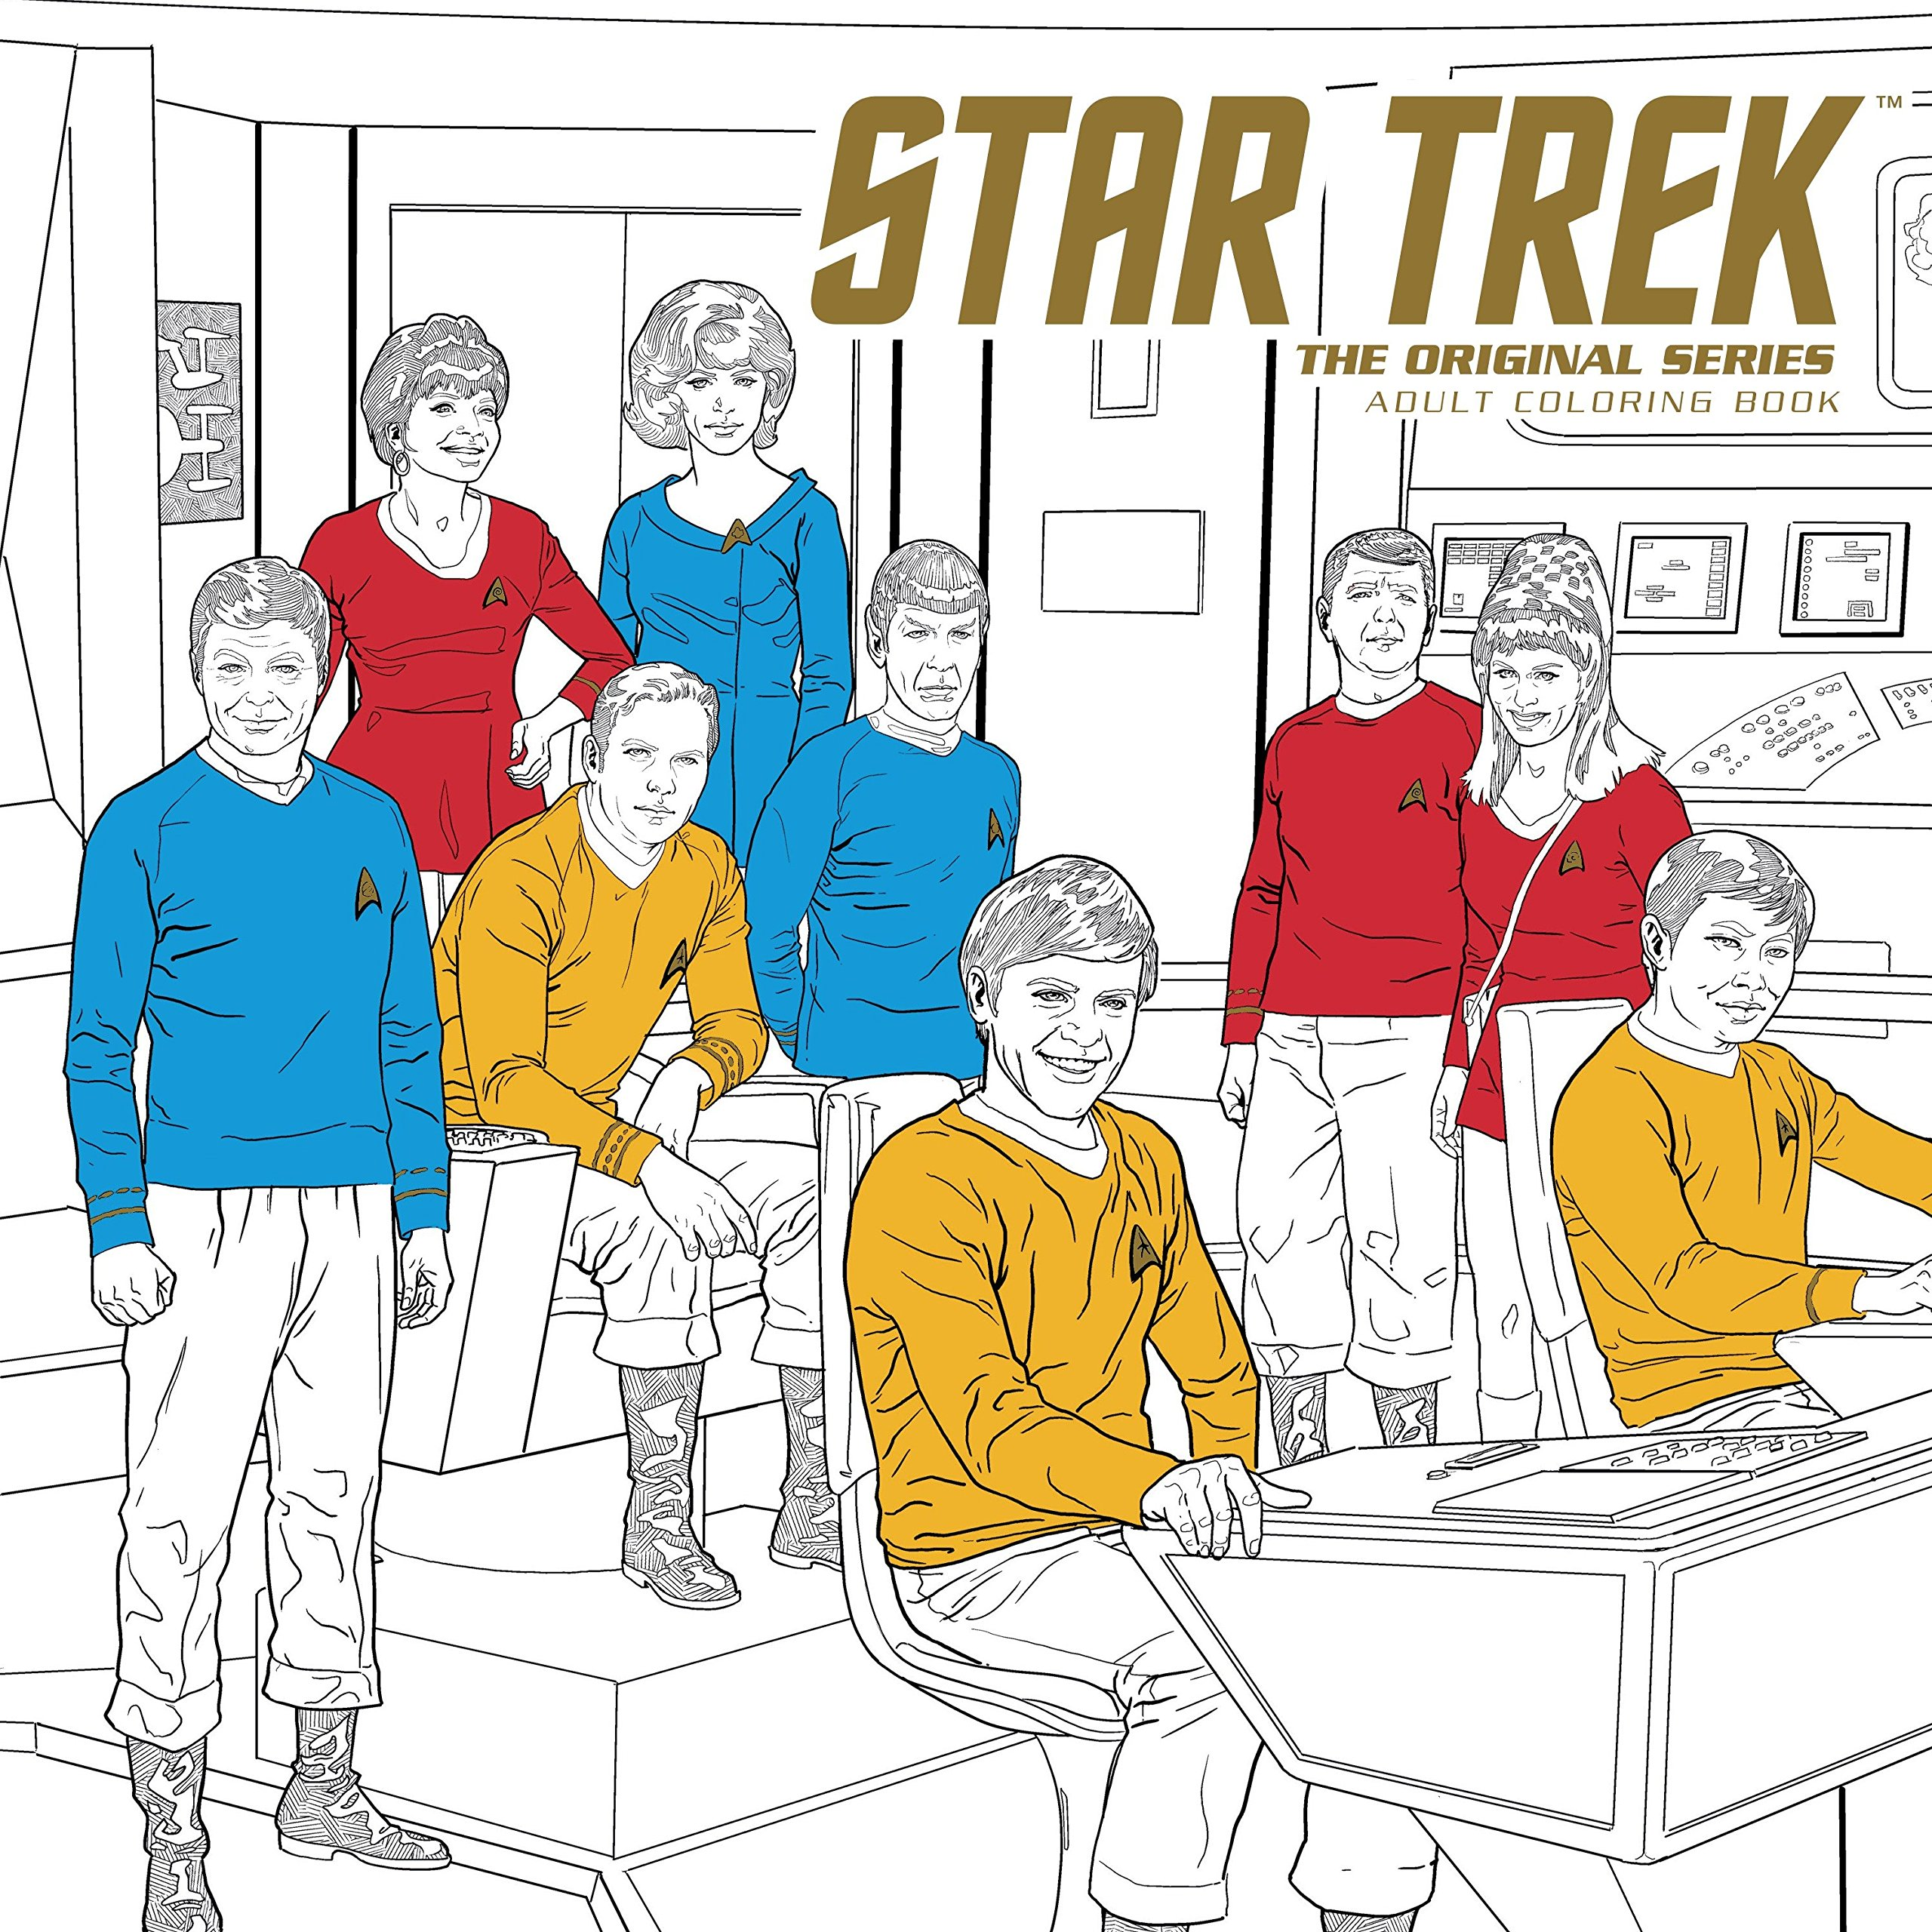 Star Trek: The Original Series Adult Coloring Book by Dark Horse Books